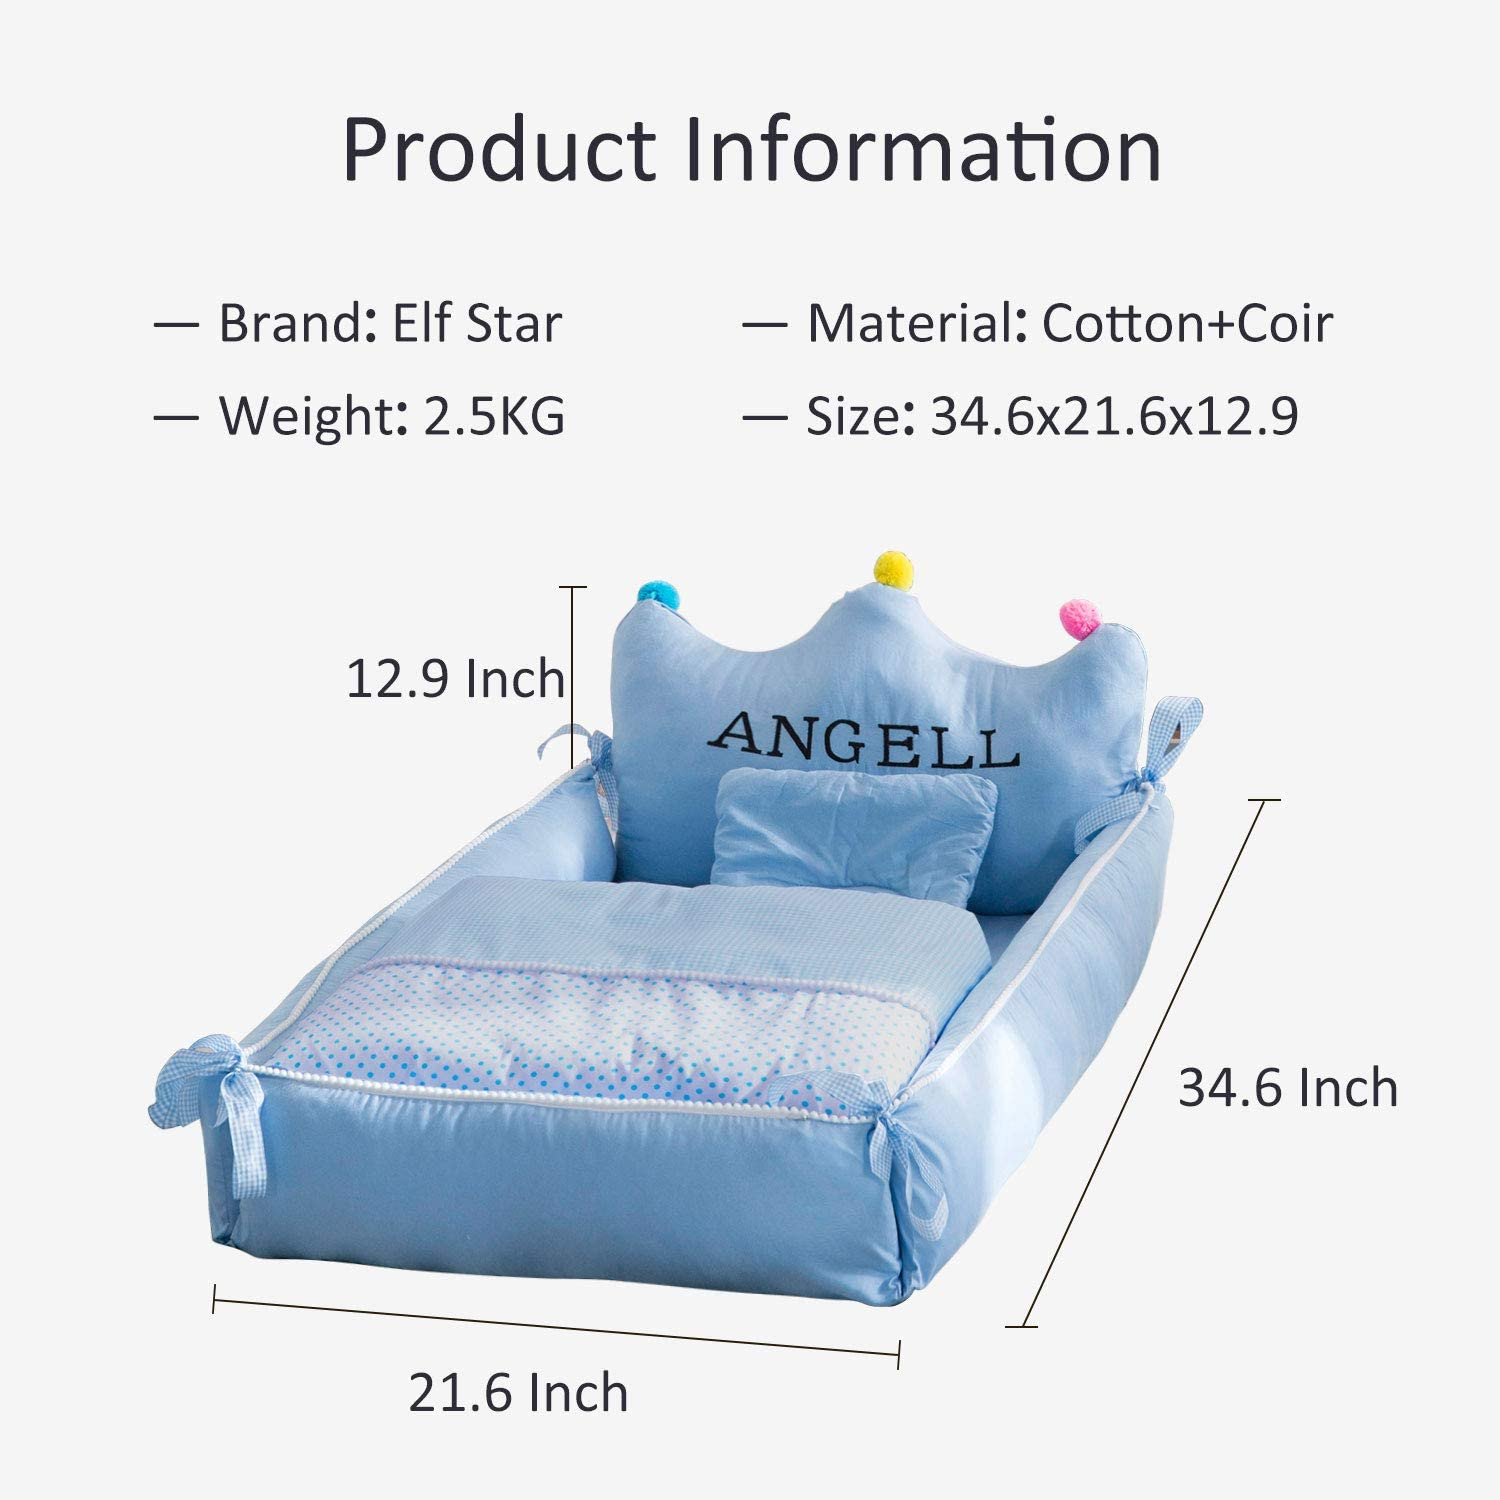 Elf Star 5 Pcs Portable Baby Bed Set Including Mattress Blanket Cover and Pillow for 0-12 Months Newborn Babies Breathable Washable Removable Crib for Co-Sleeping Napping Travel Bed Cover Blanket